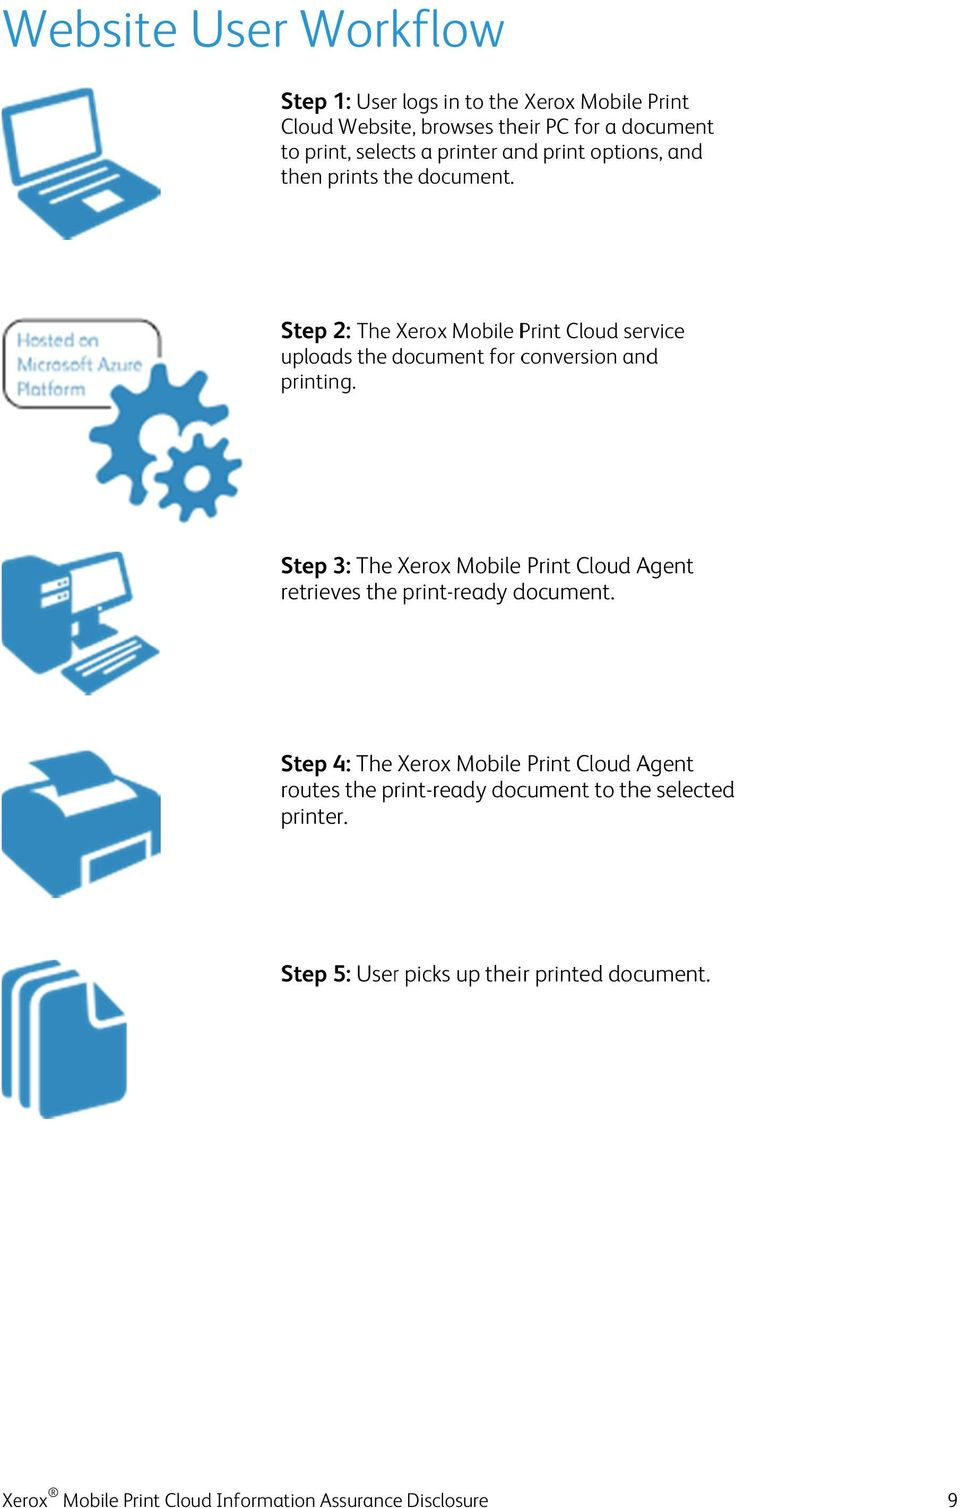 Step 2: The Xerox Mobile Print Cloud service uploads the document for conversion and printing.